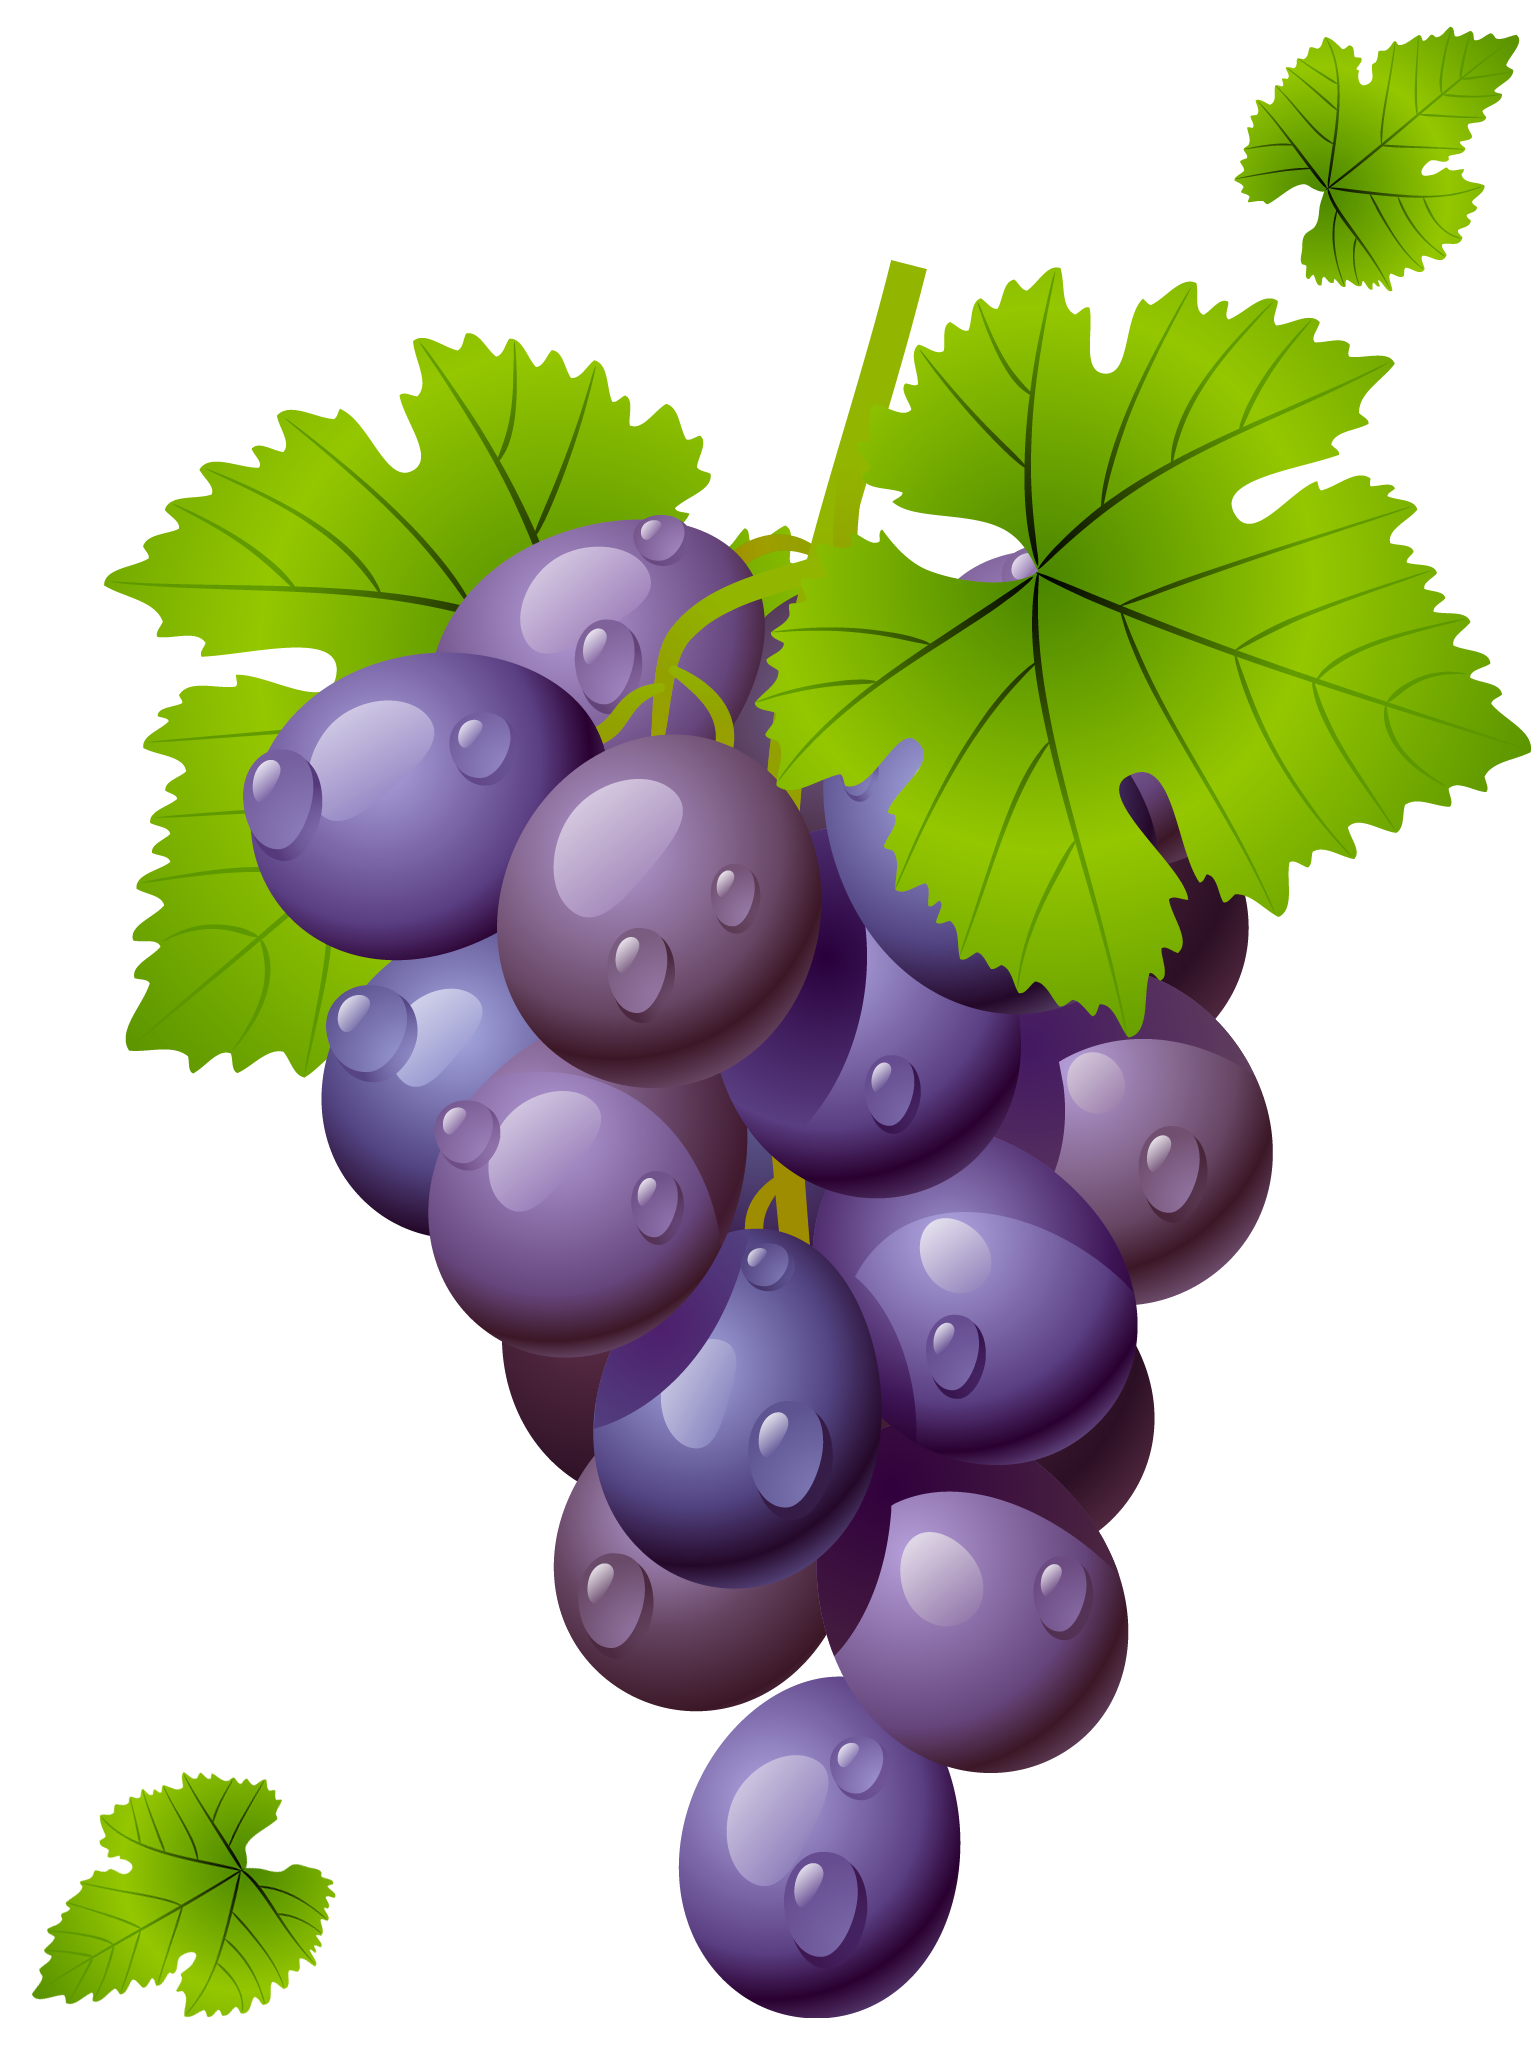 image With leaves png picture. Grape clipart